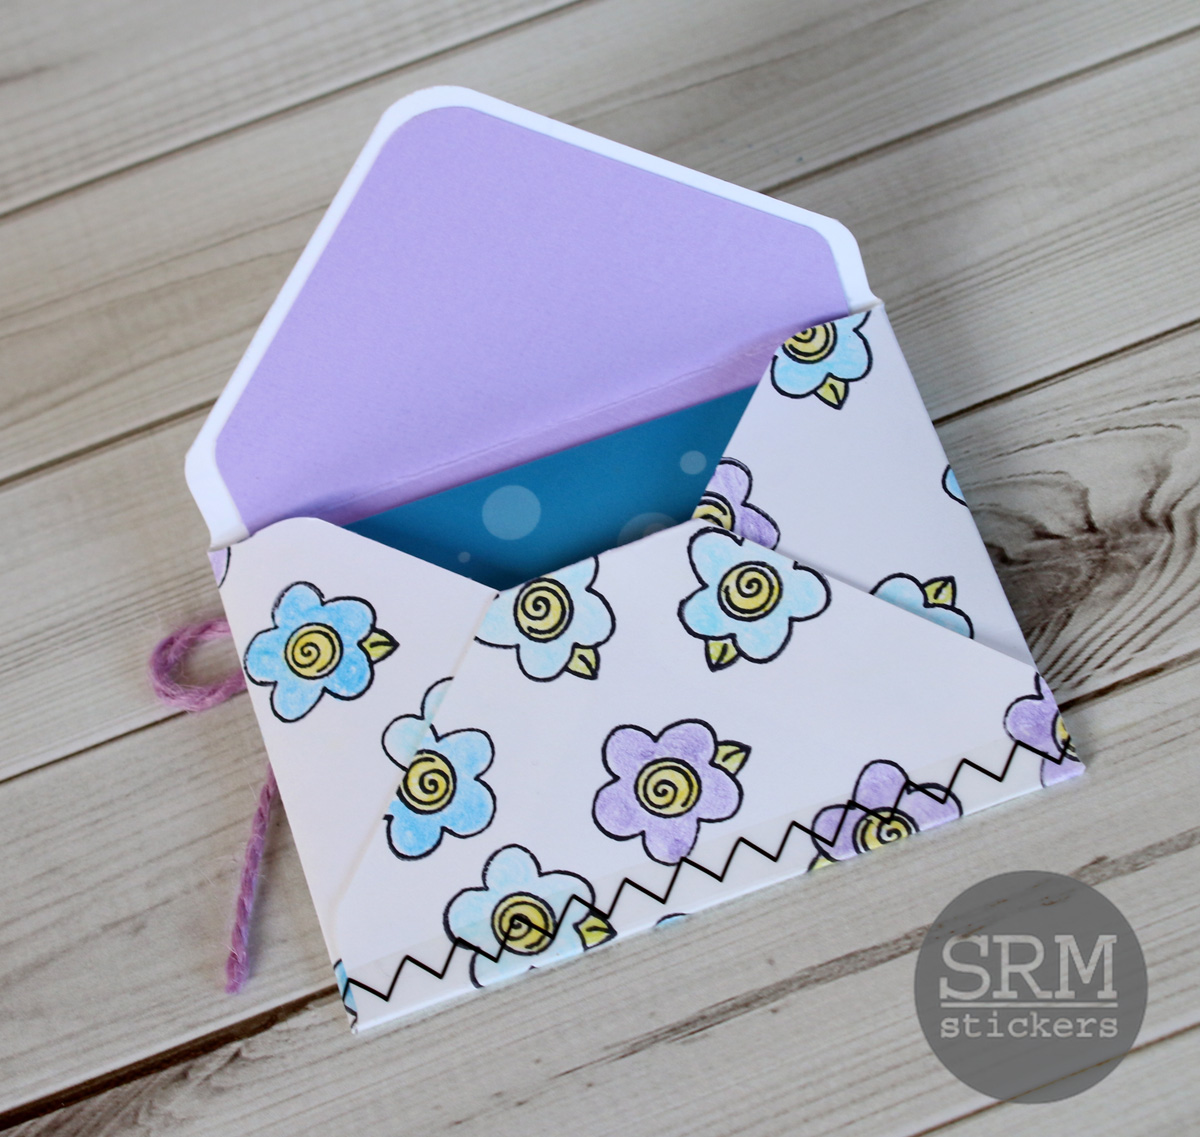 Srm stickers mothers day gift card holder by samantha the best part about coloring your envelope yourself is that you can customize the colors to the recipient solutioingenieria Image collections